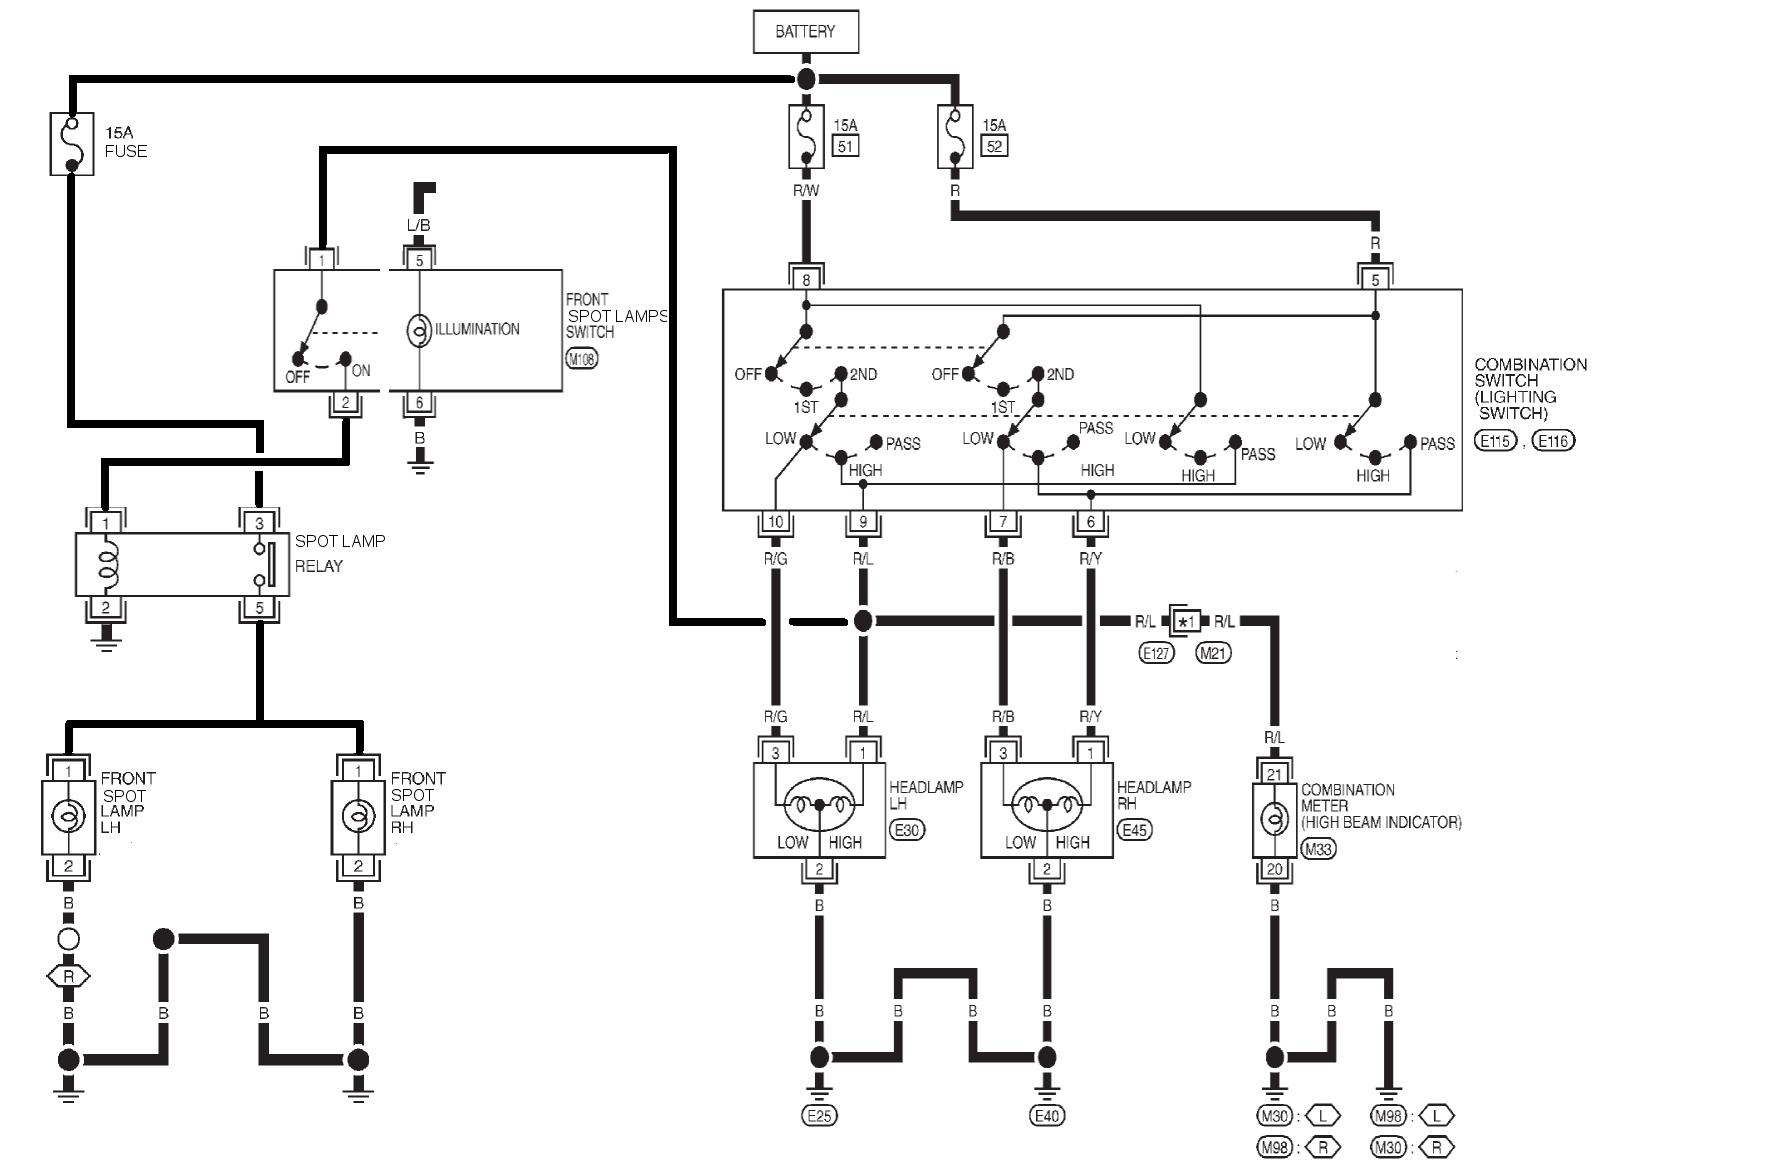 Beautiful Gq Patrol Wiring Diagram Contemporary - Best Images for ...